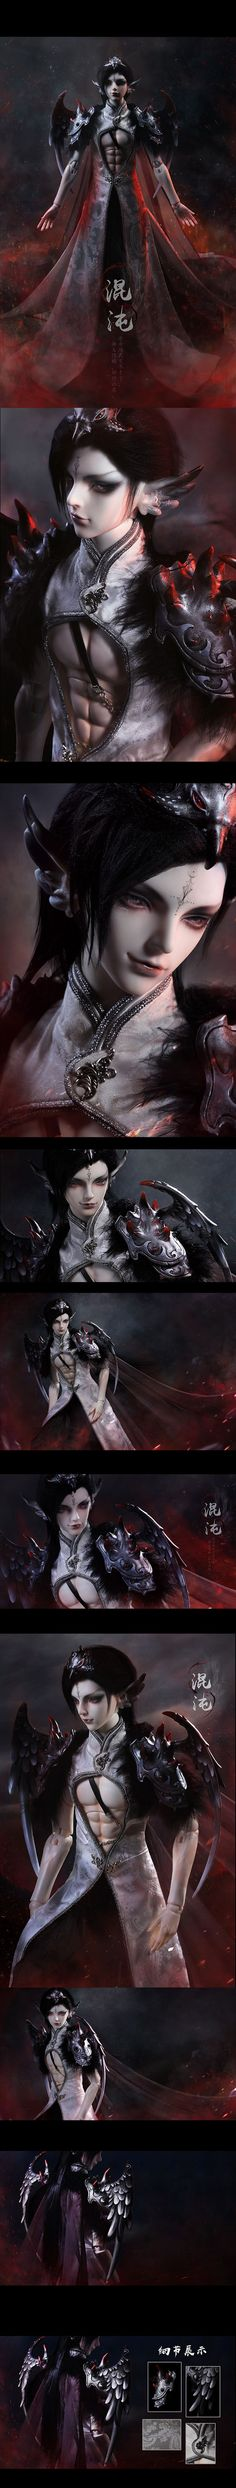 BJD Limited 60 Sets Chaos Beast Version 68cm Boy Boll-jointed doll_Limited DOll_LOONG SOUL_DOLL_Ball Jointed Dolls (BJD) company-Legenddoll